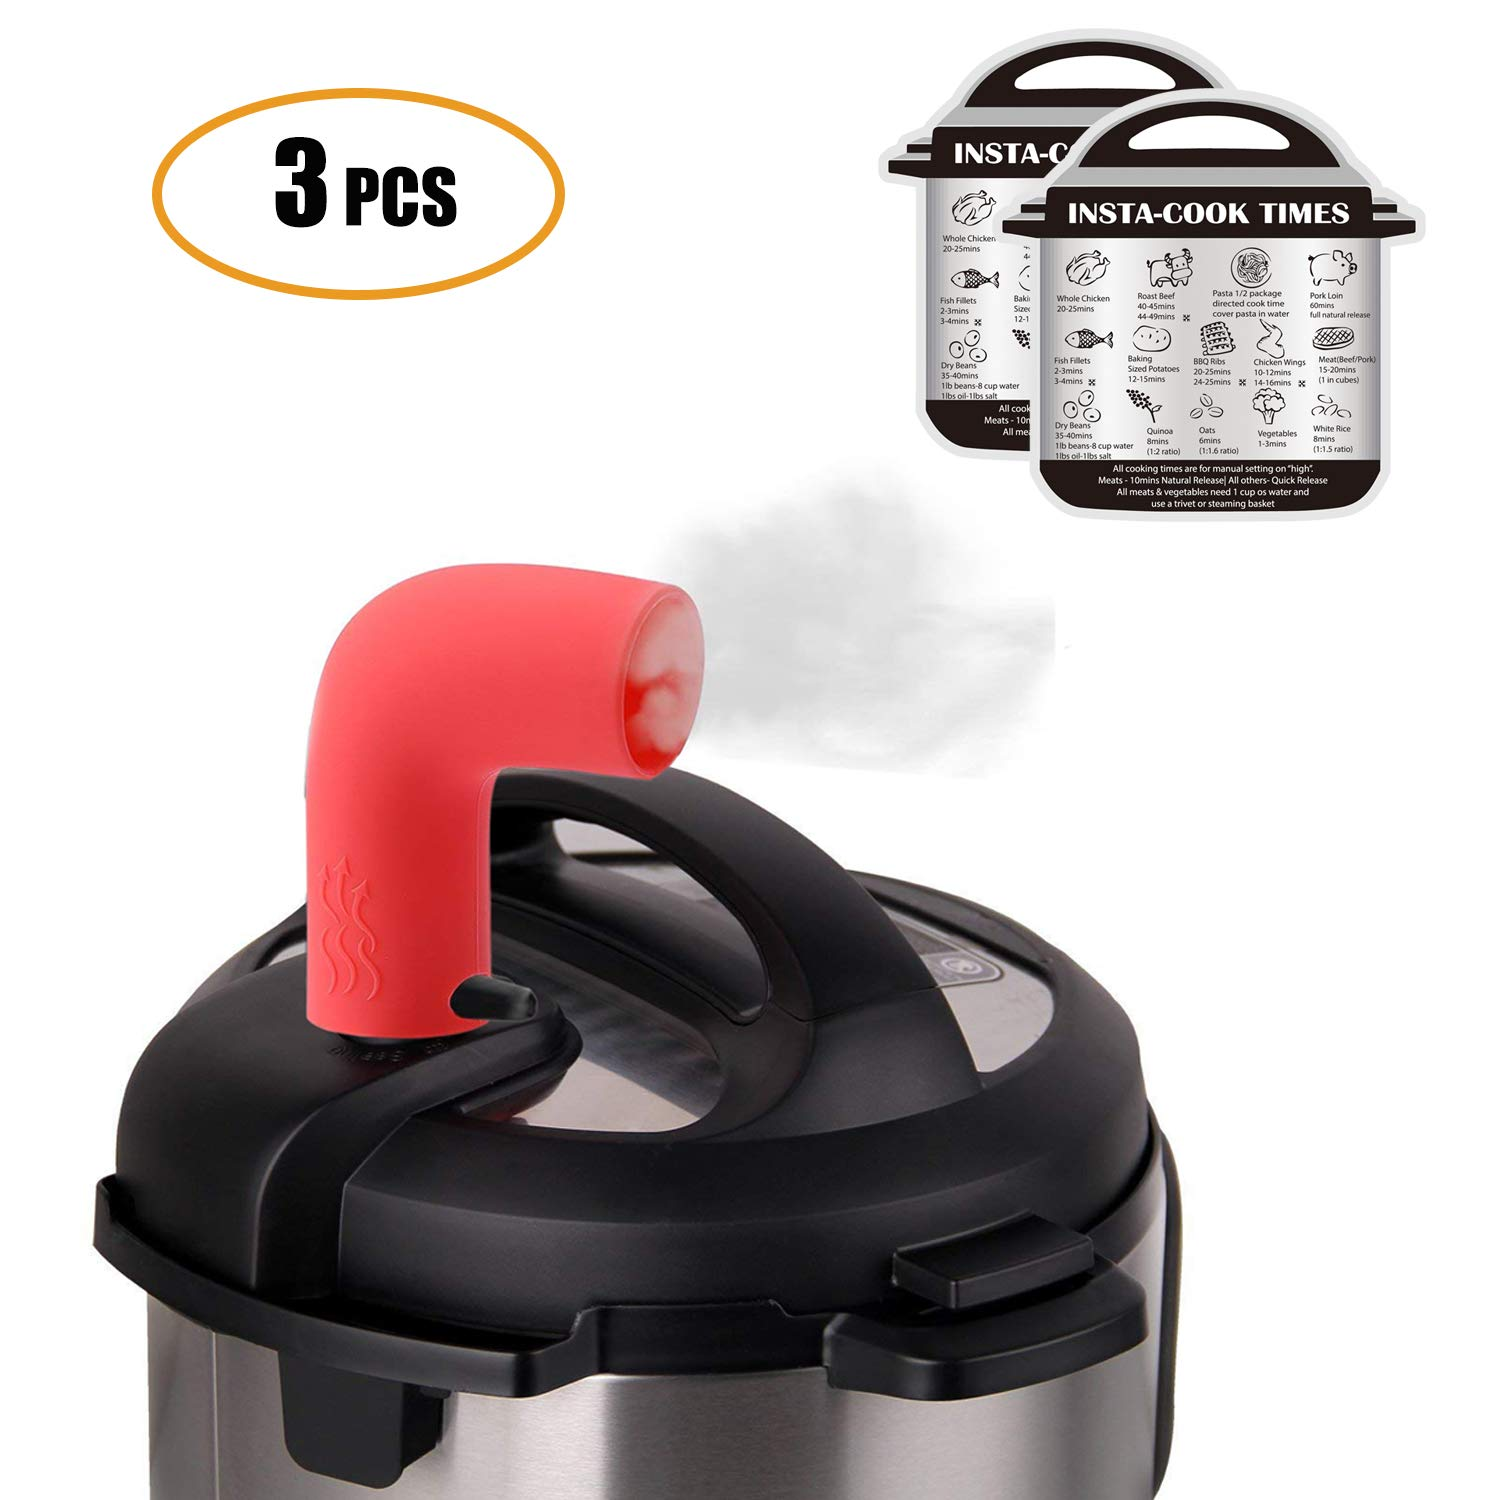 Steam Diverter for Instant Pot,Silicone Steam Release Accessory for Instant Pot Mini,5,6,8 Qt,Duo,Duo Plus,Smart Series include 2 pcs Magnetic Cheat Sheet (1)